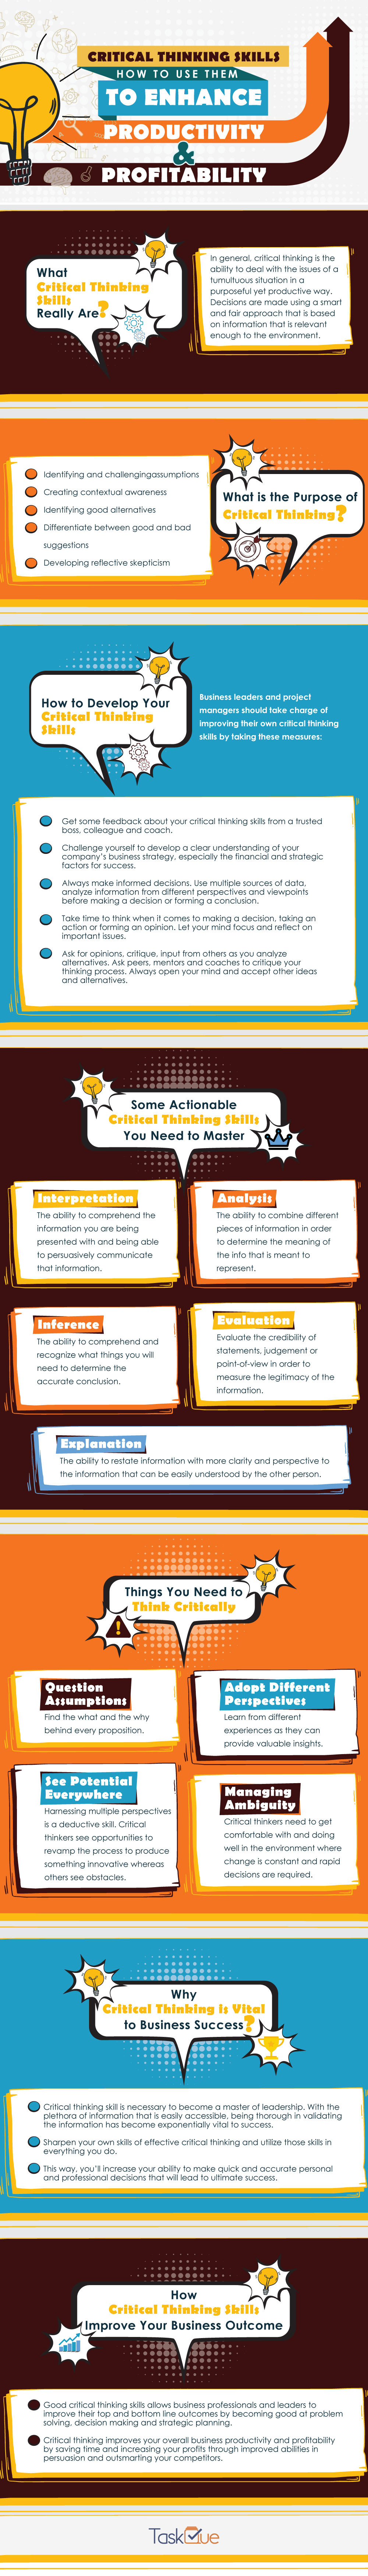 is critical thinking a natural skill Start studying ch 2 critical thinking & nursing process learn vocabulary, terms, and more with flashcards, games, and other study tools.